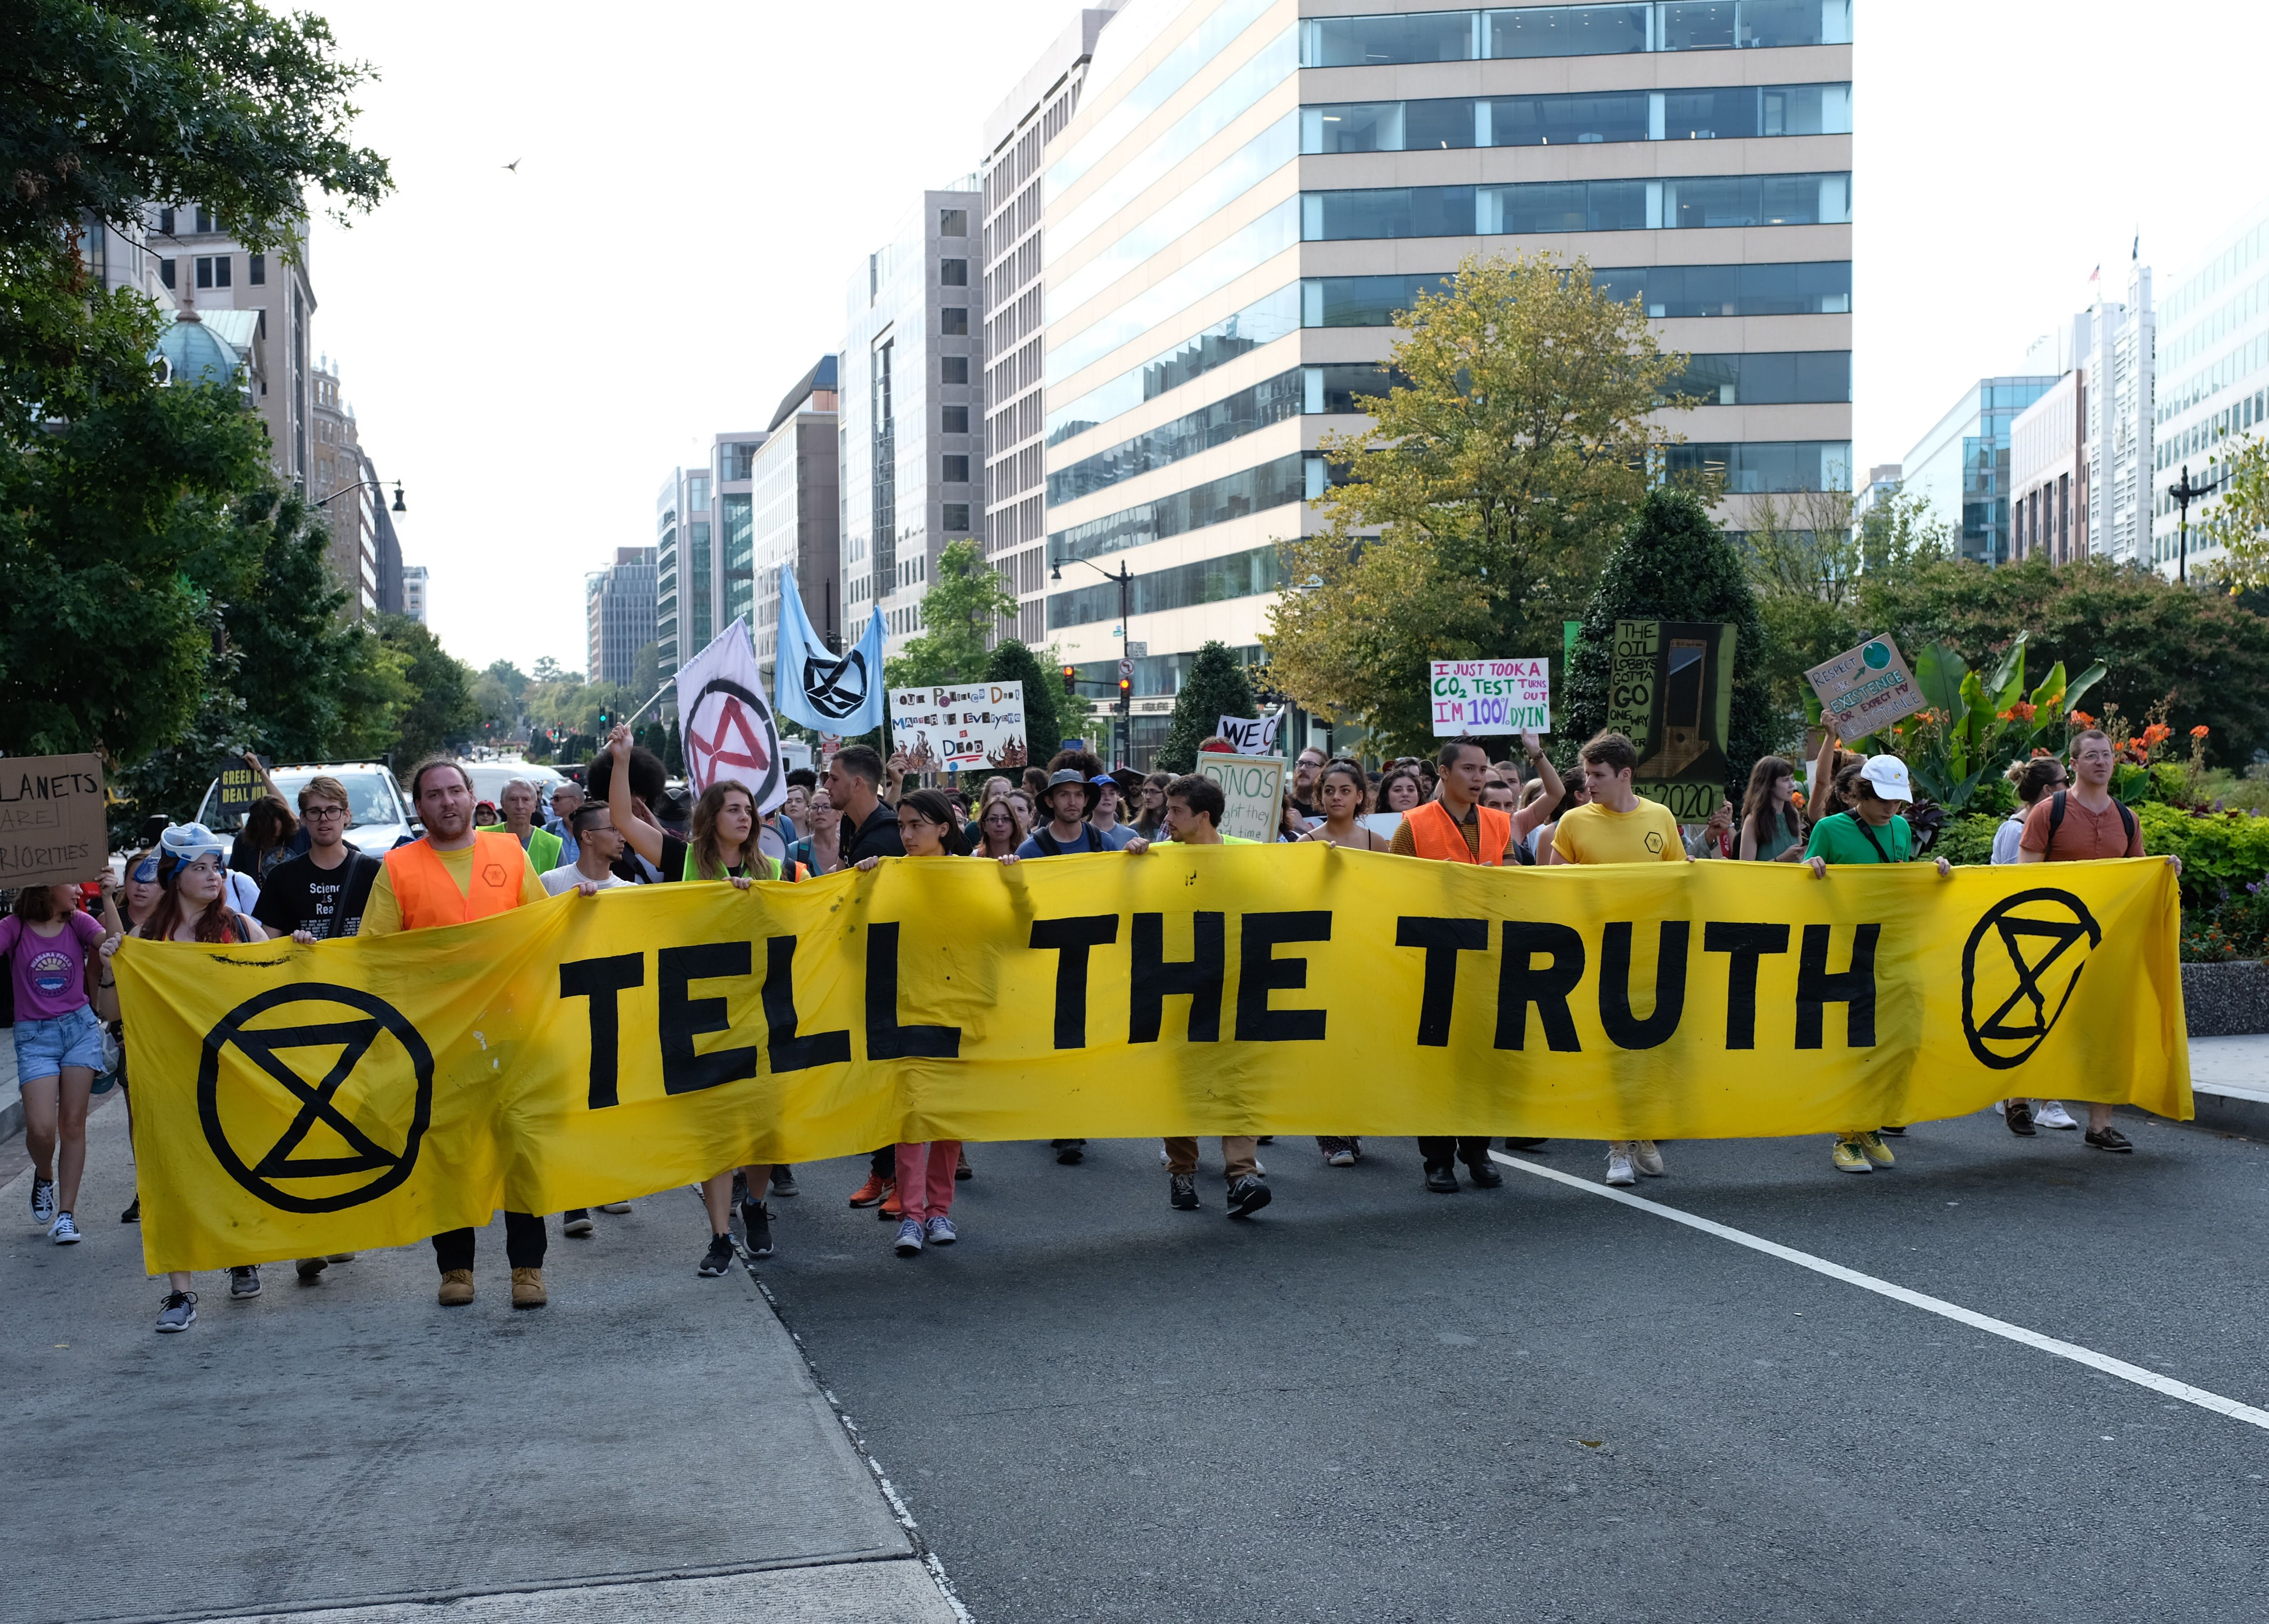 """A group of demonstrators march in the middle of a road carrying a large yellow banner that reads """"Tell The Truth."""""""